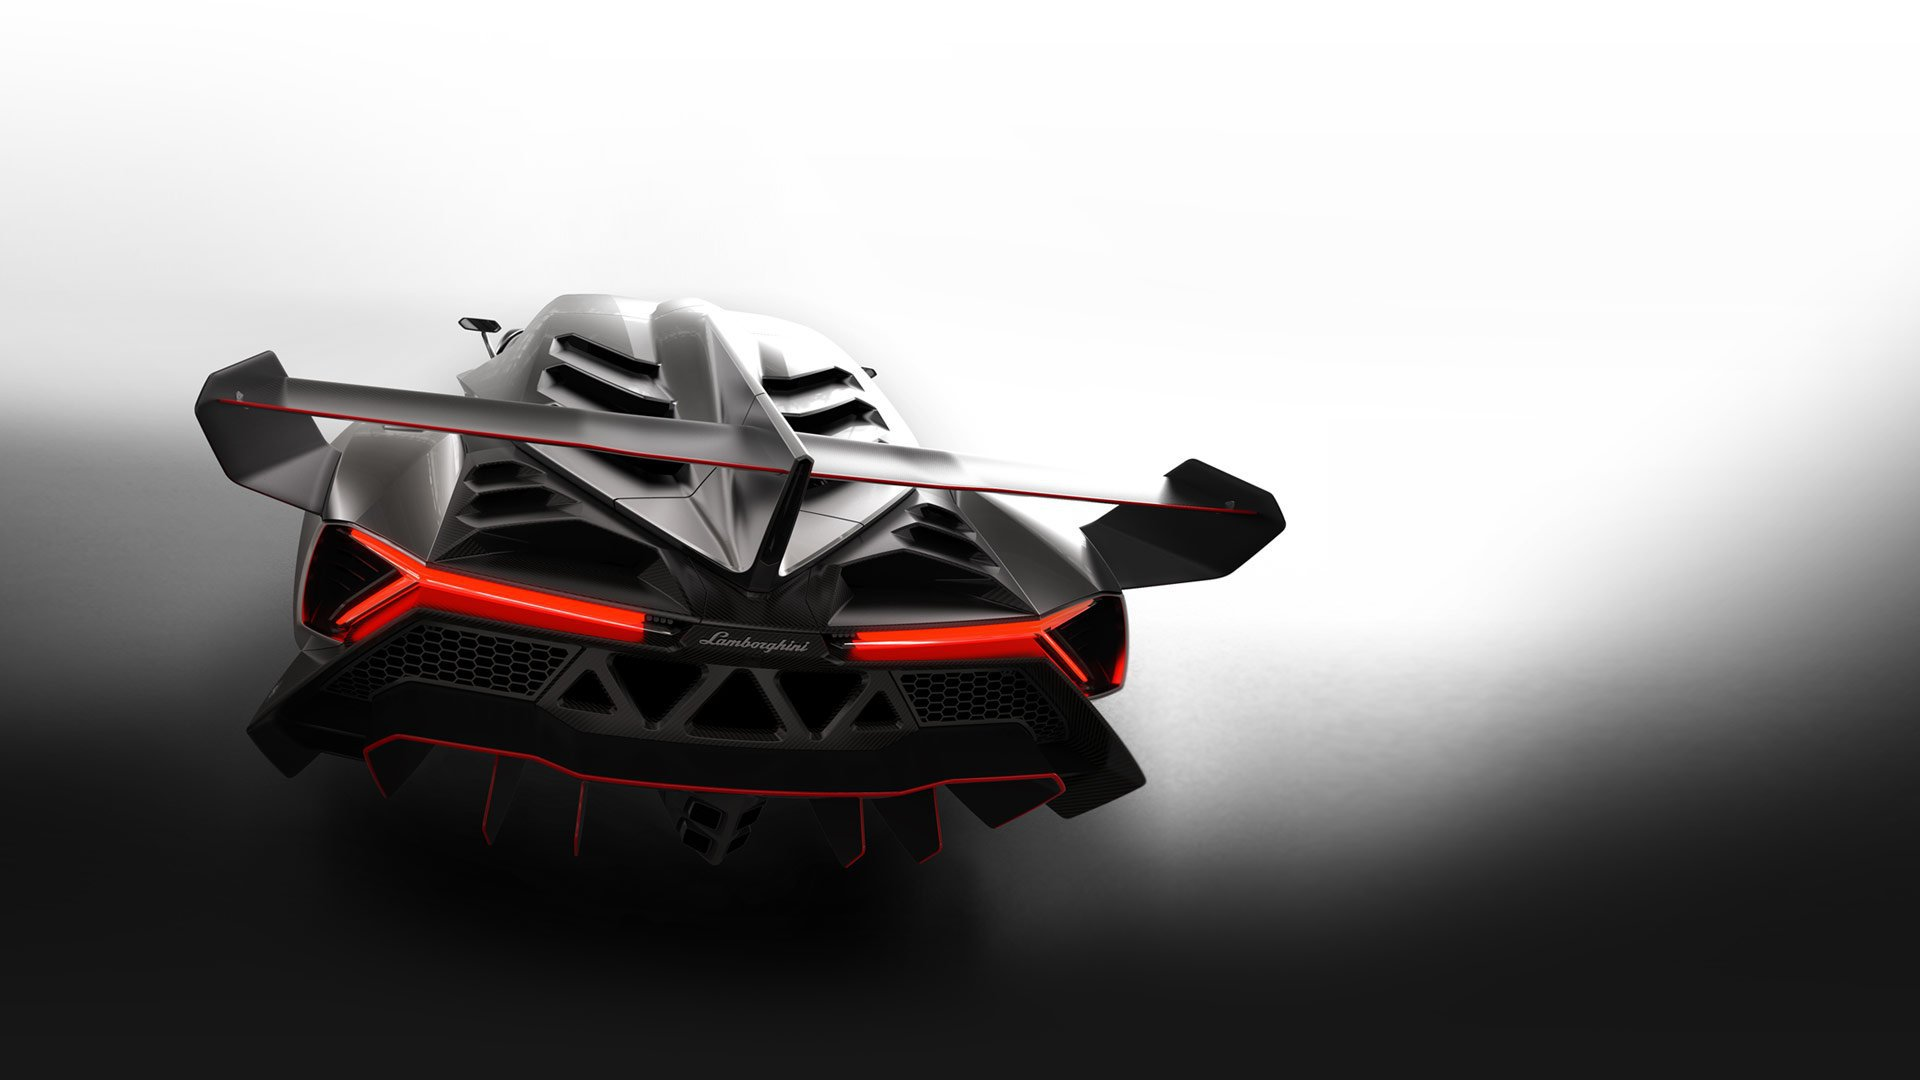 Lamborghini veneno wallpaper hd